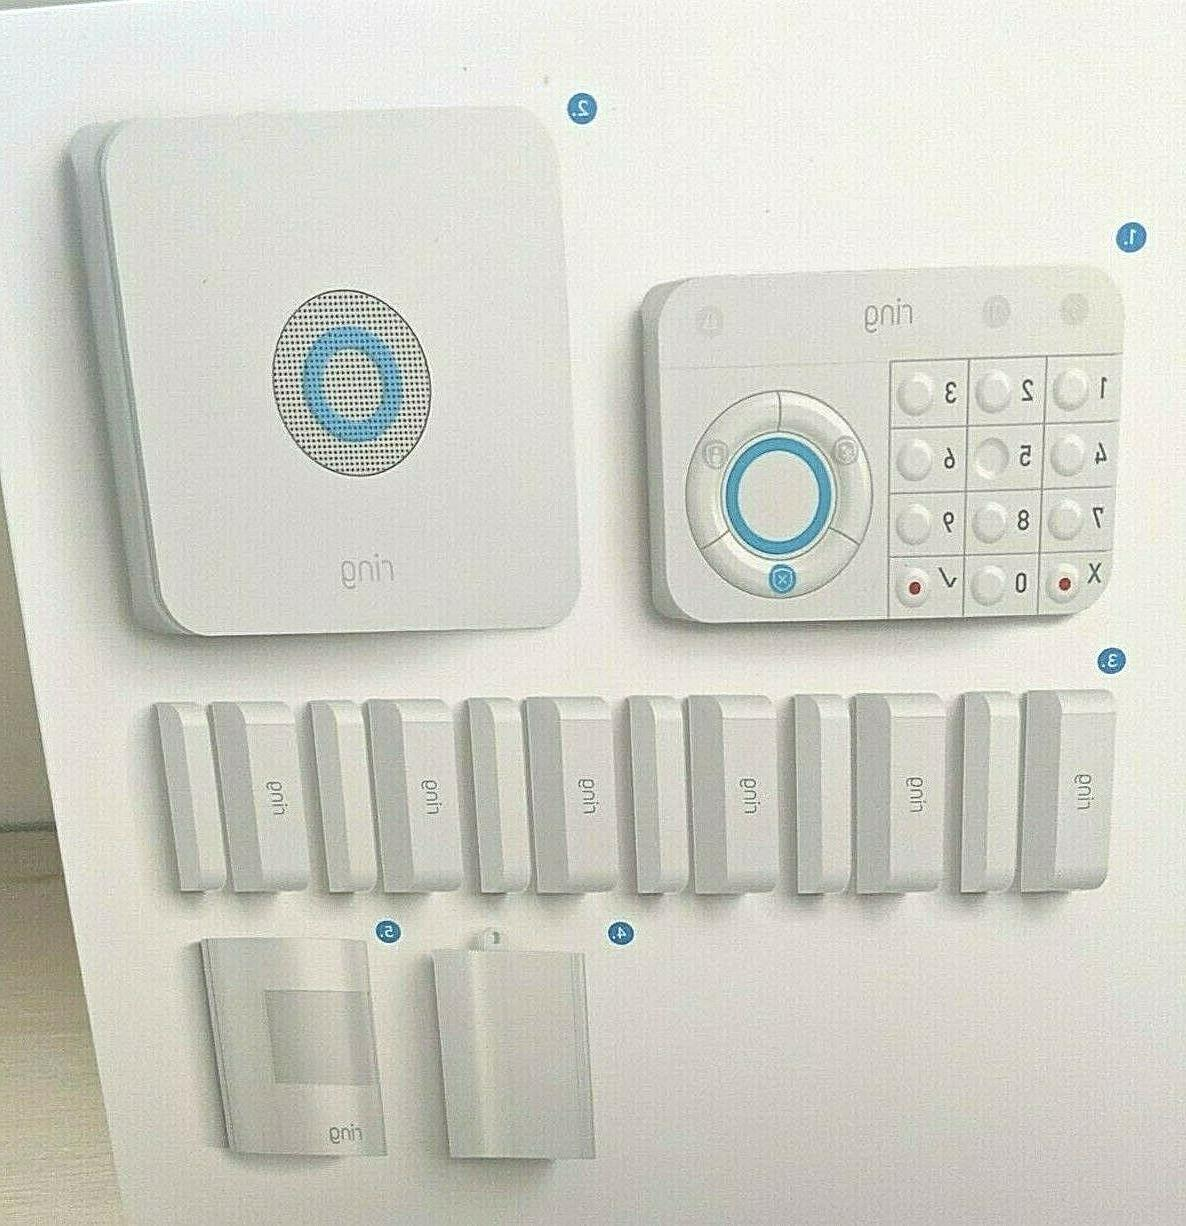 NEW Ring Security - 10 Smart Security